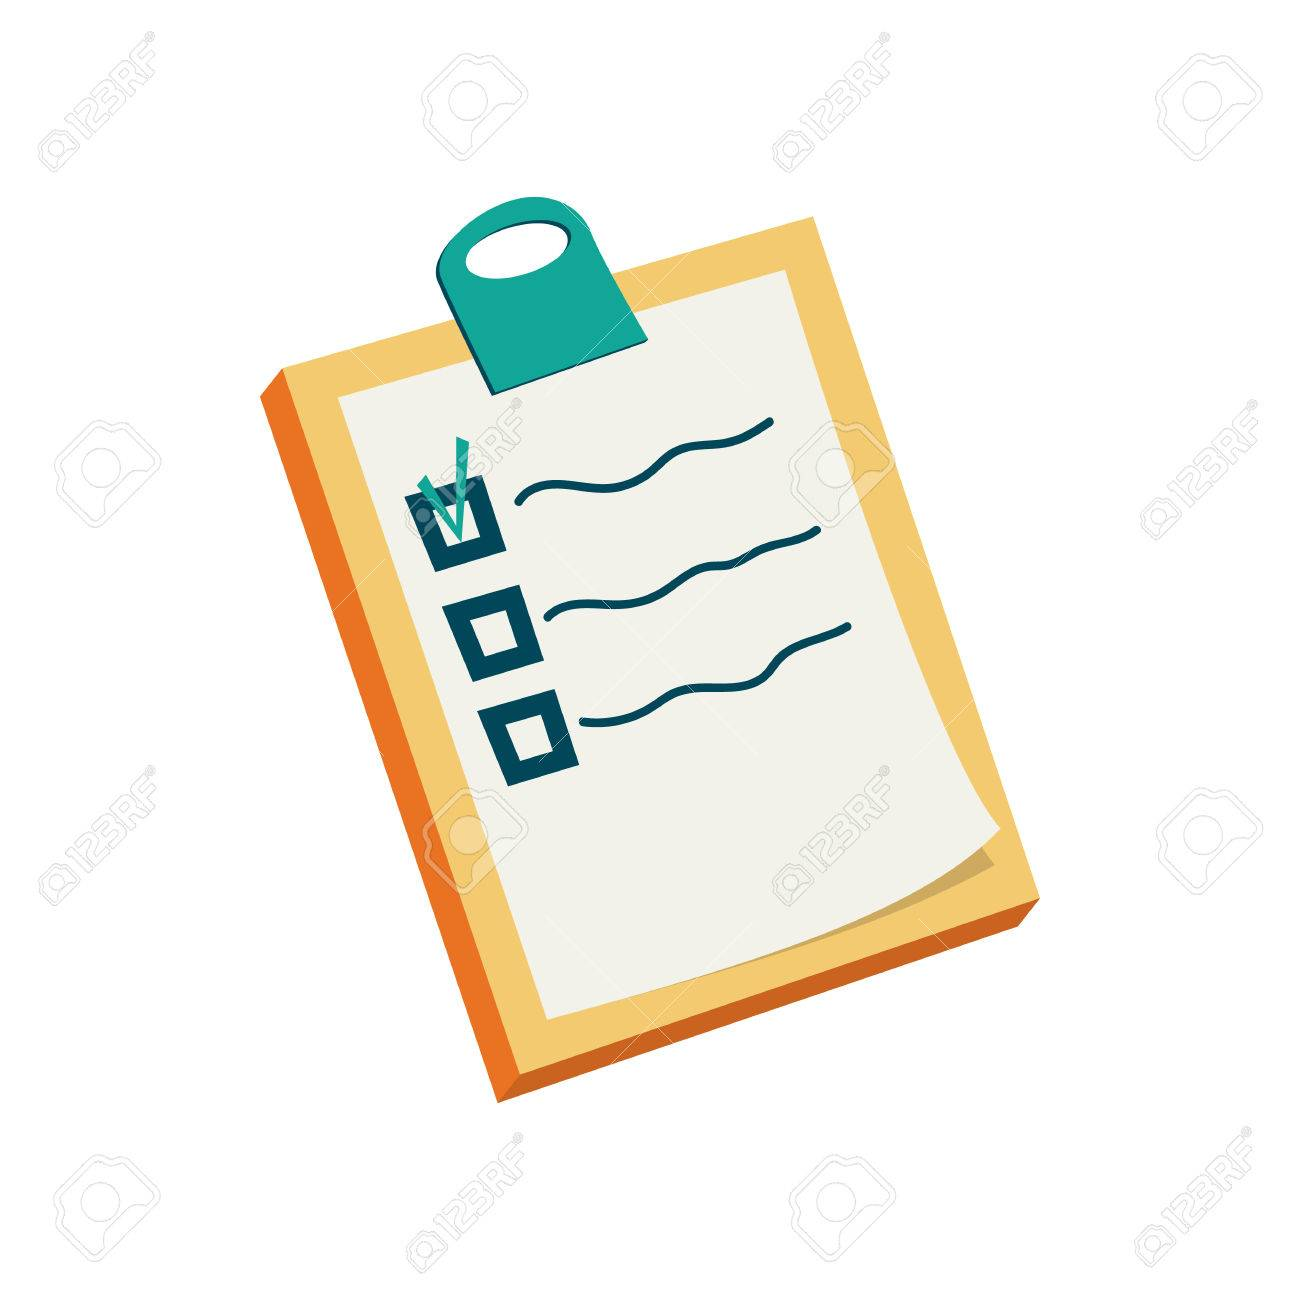 to do list icon in cartoon style on a white background royalty free